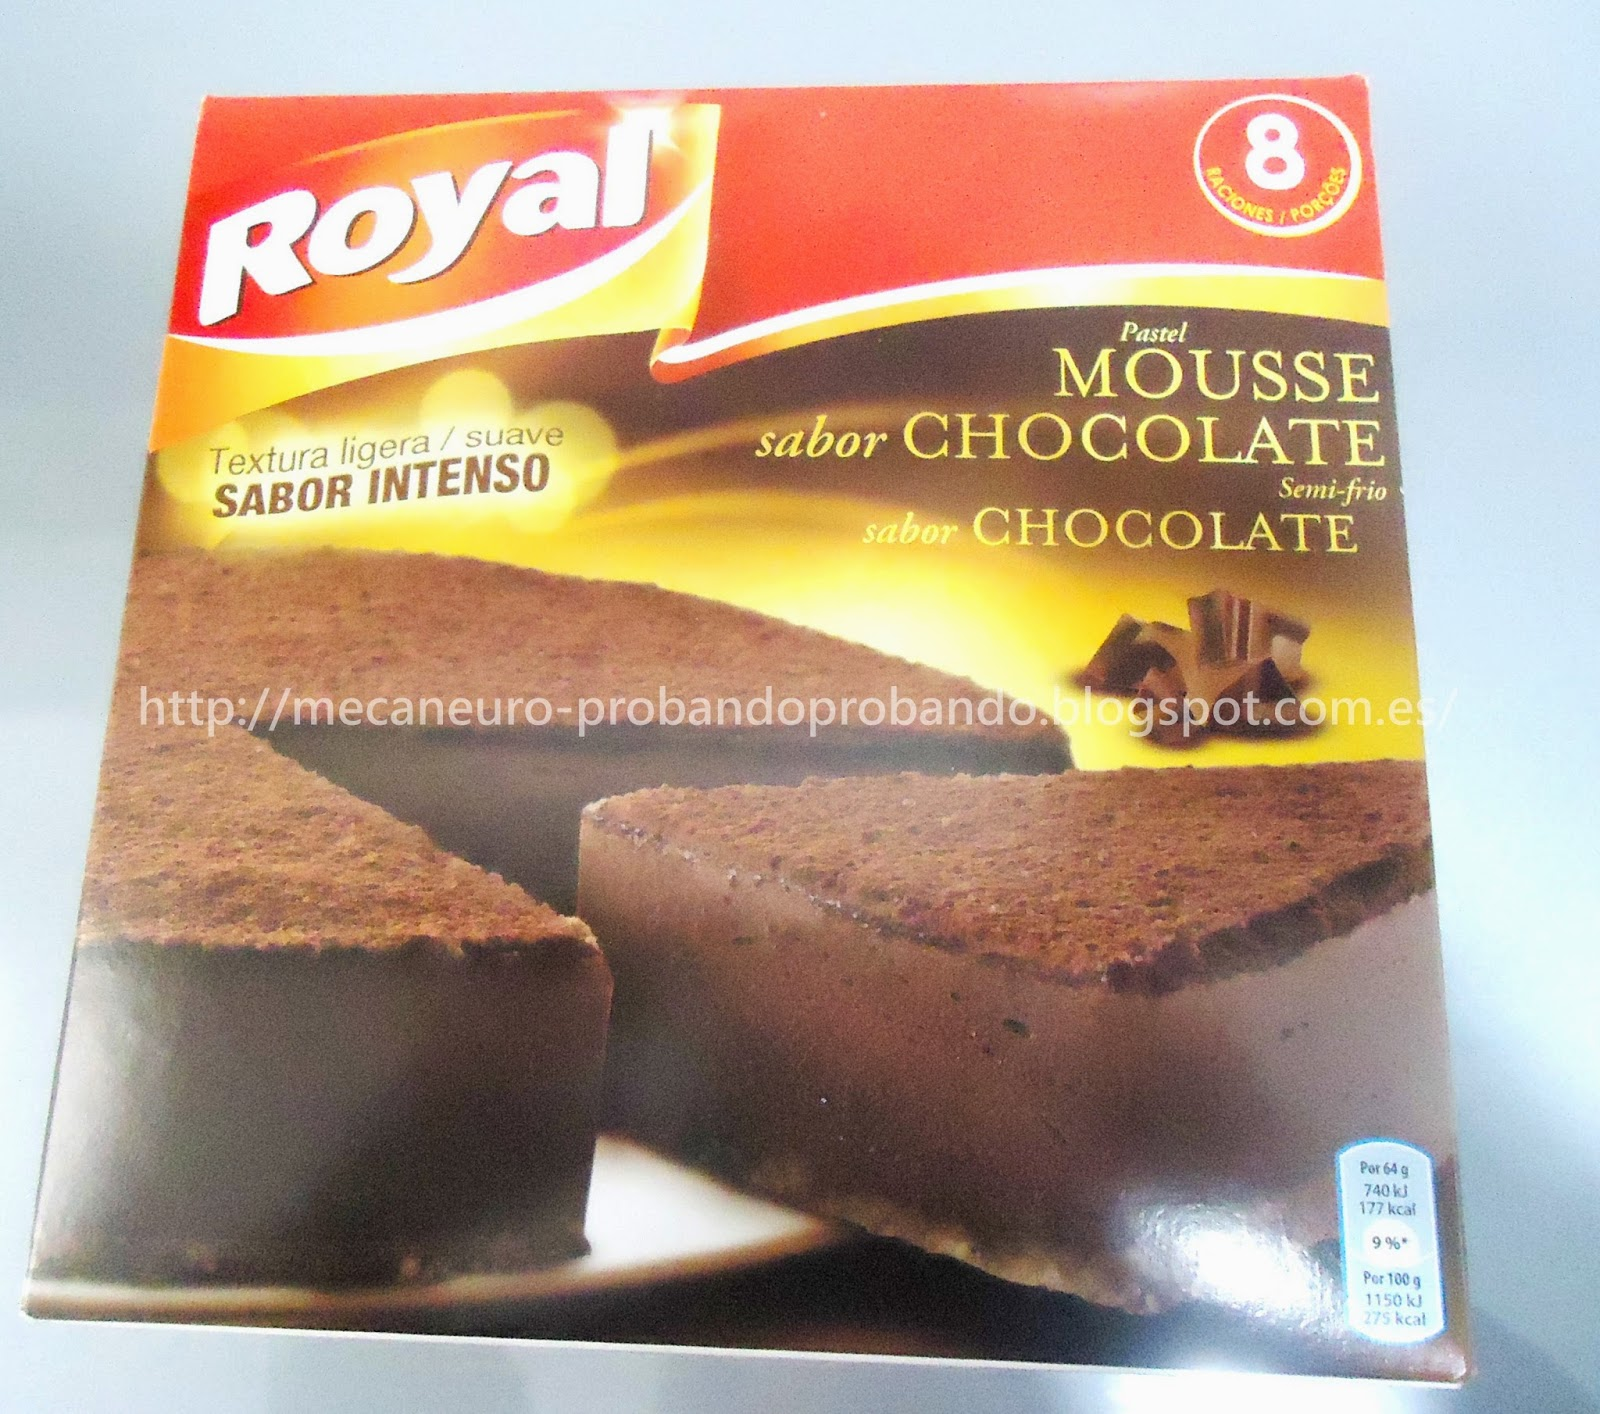 Pastel mousse de chocolate Royal